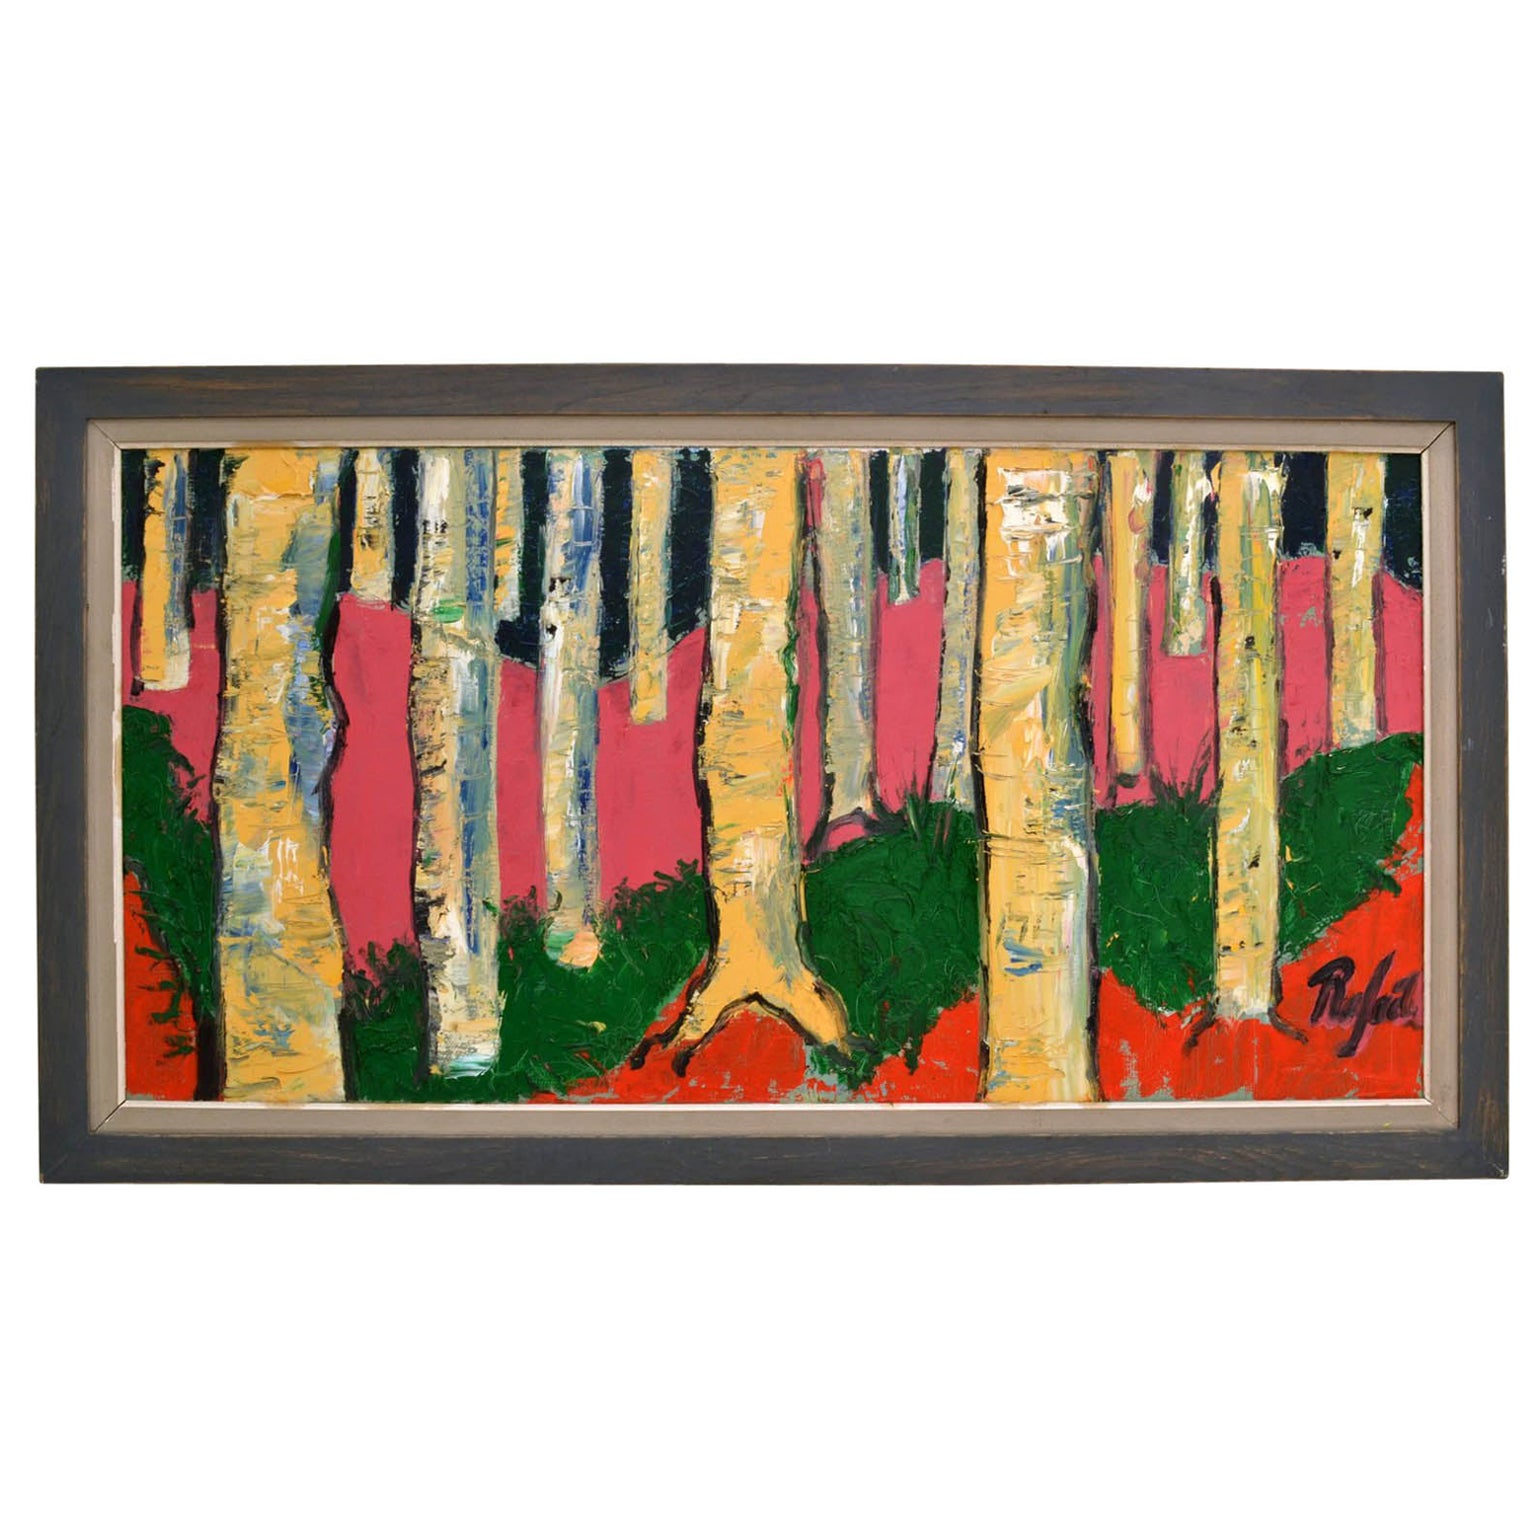 Expressionist Colorful Birch Tree Landscape Painting by Rafael, 1980s